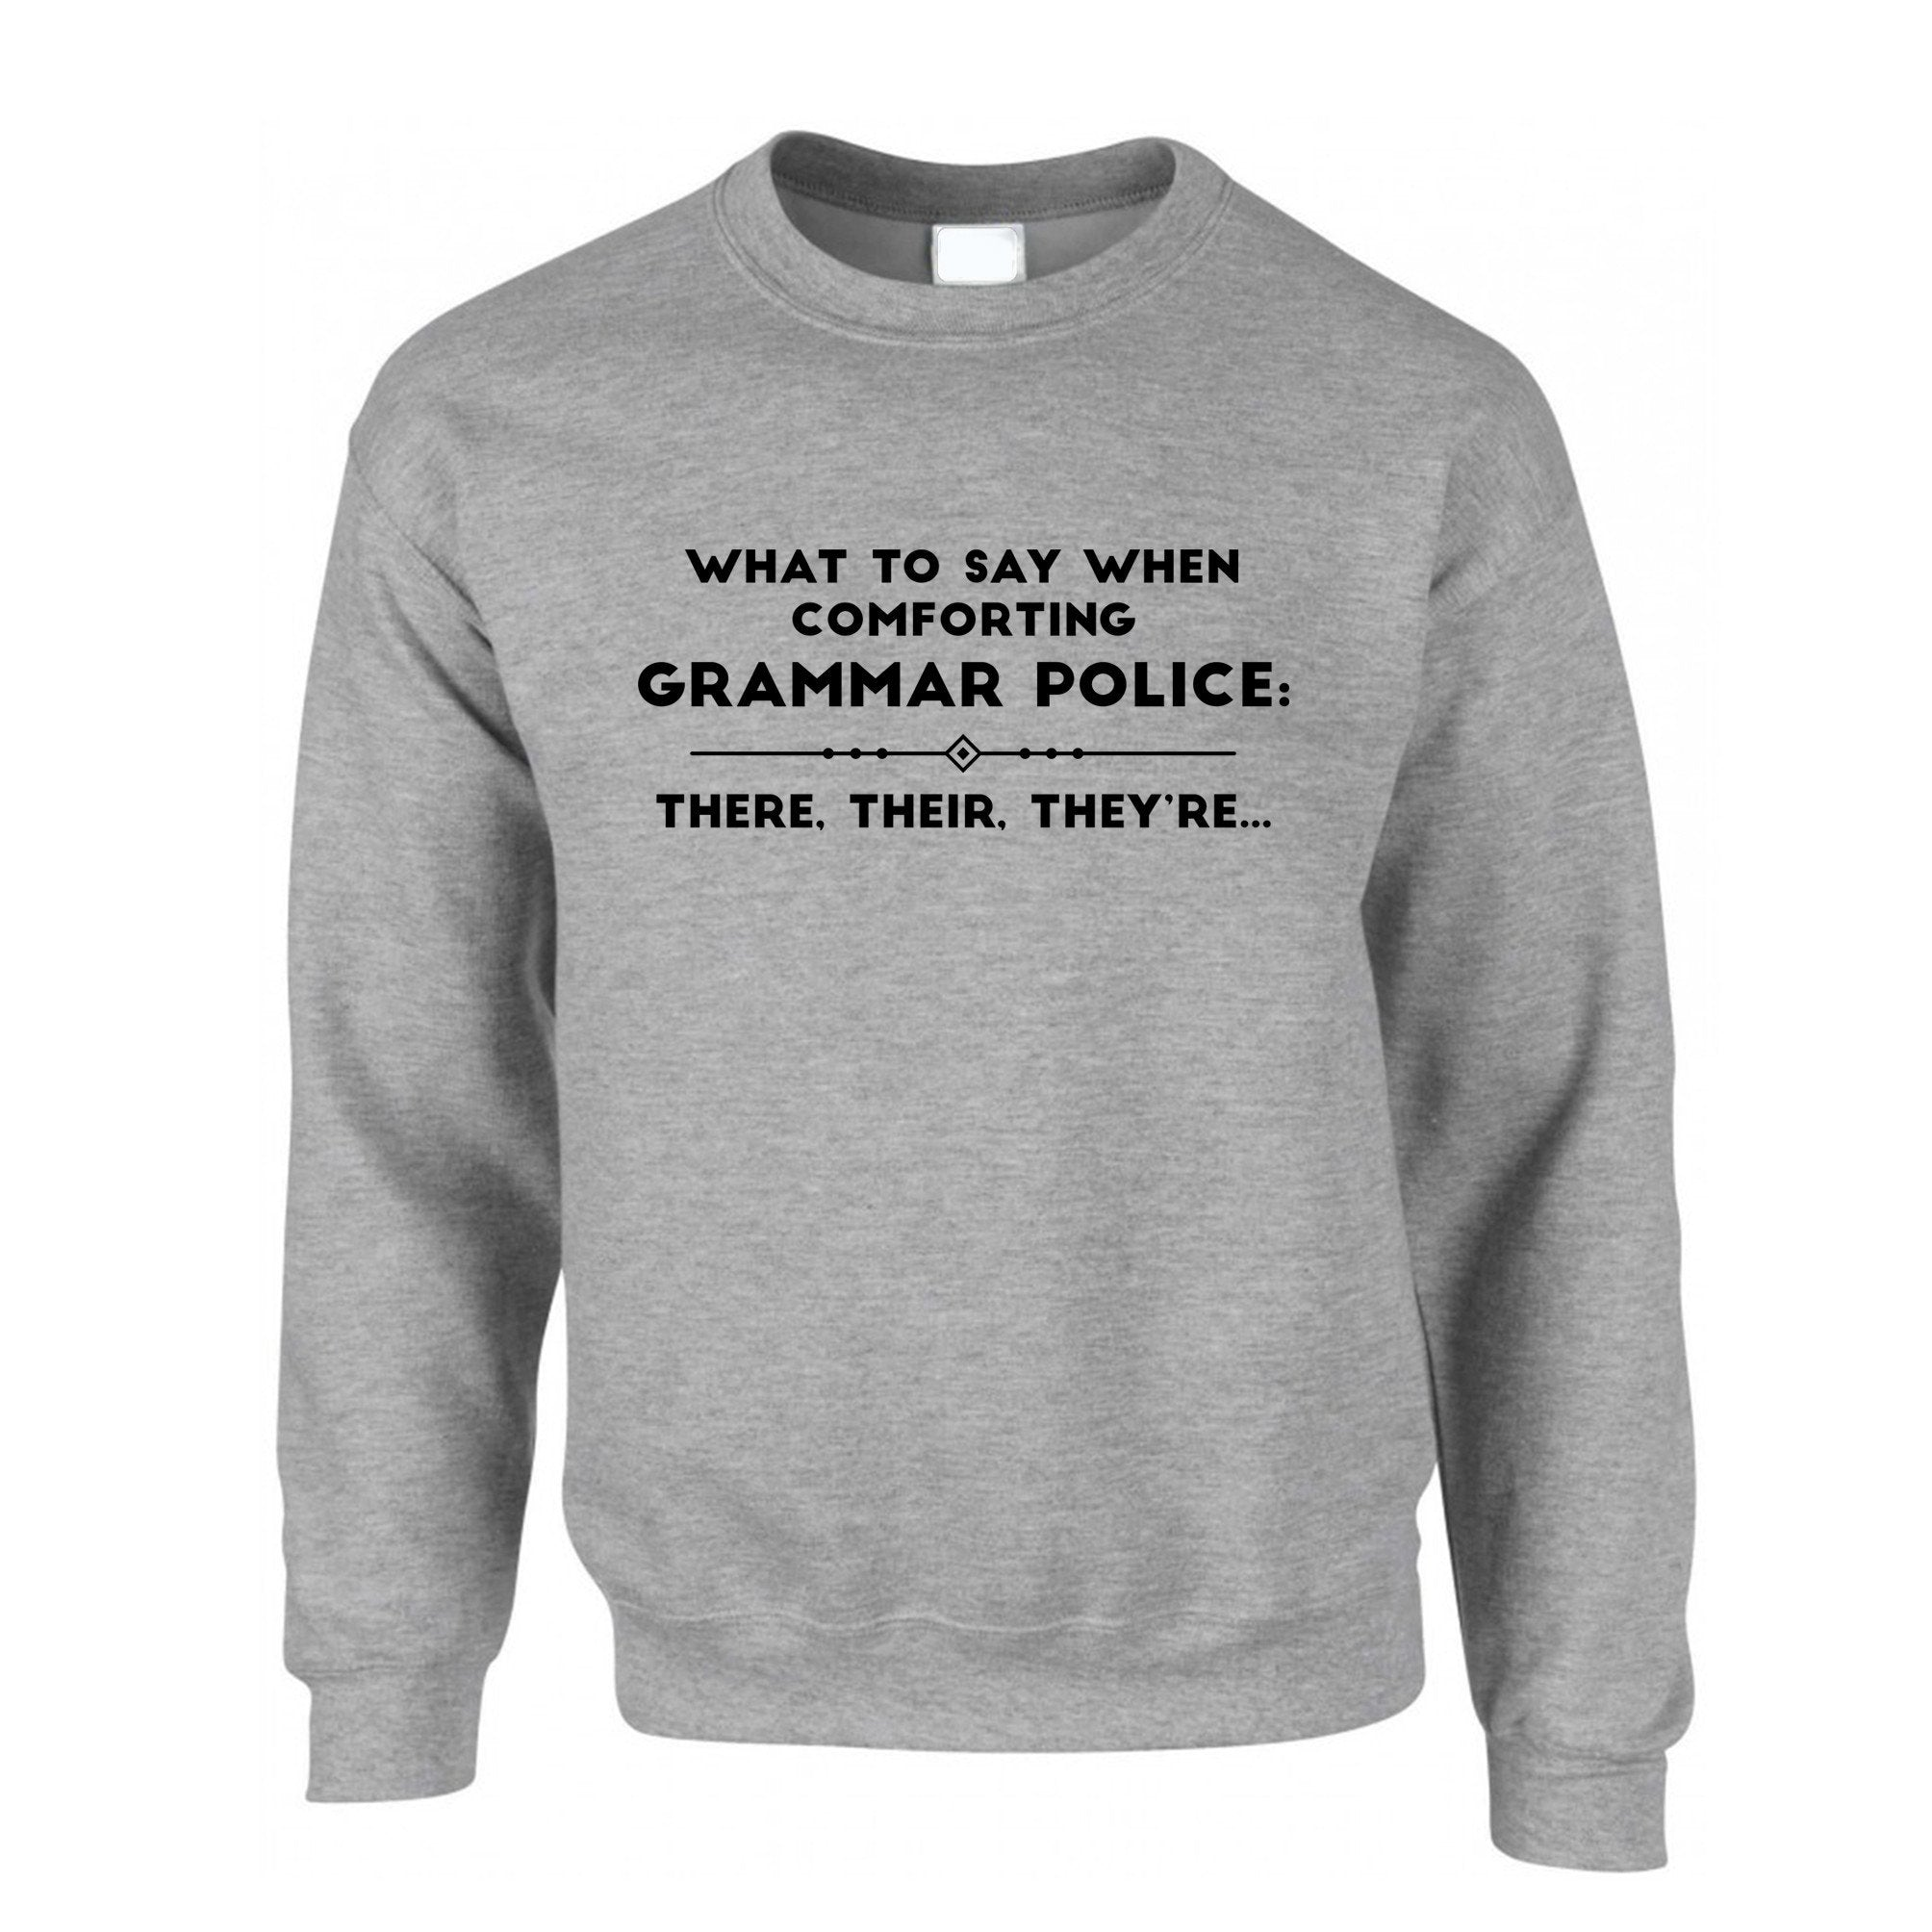 Pun Jumper What To Say When Comforting Grammar Police Sweatshirt